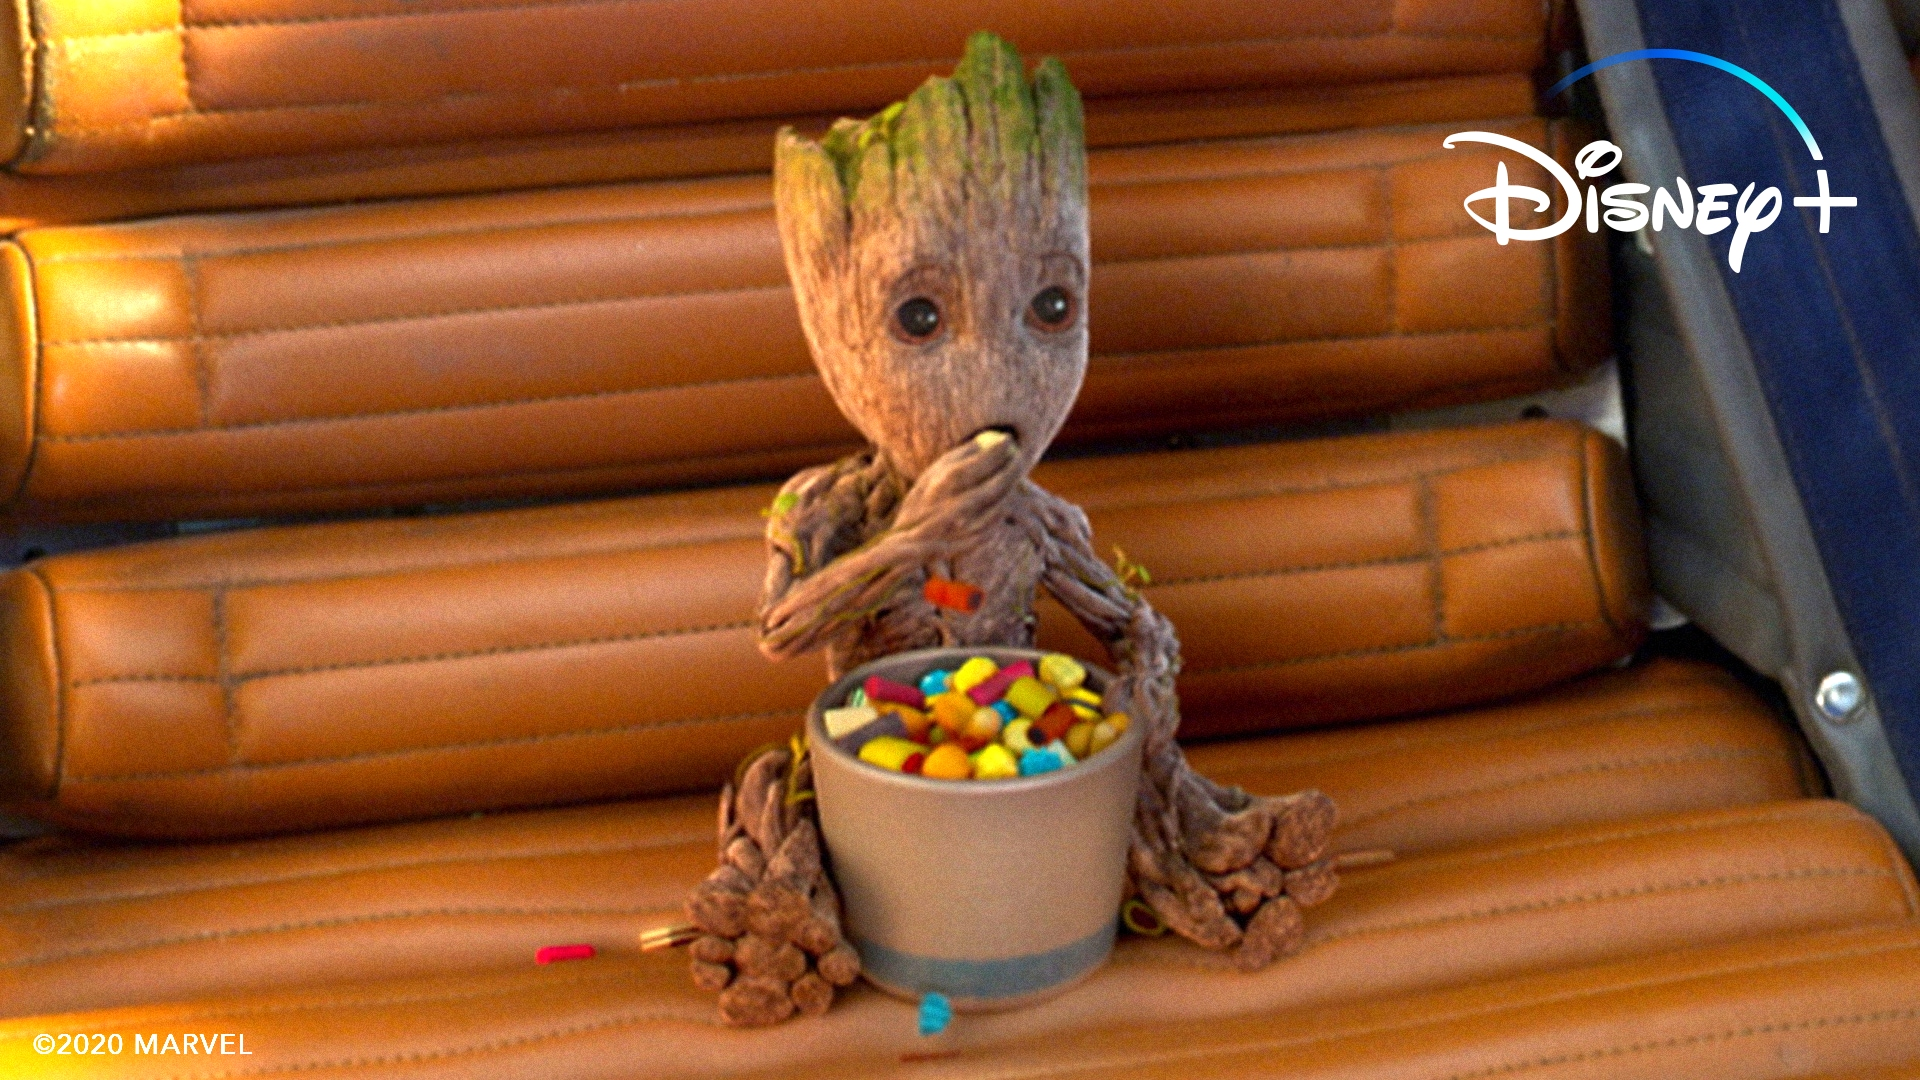 Marvel Super Heroes on the Art of Snacking | Disney+